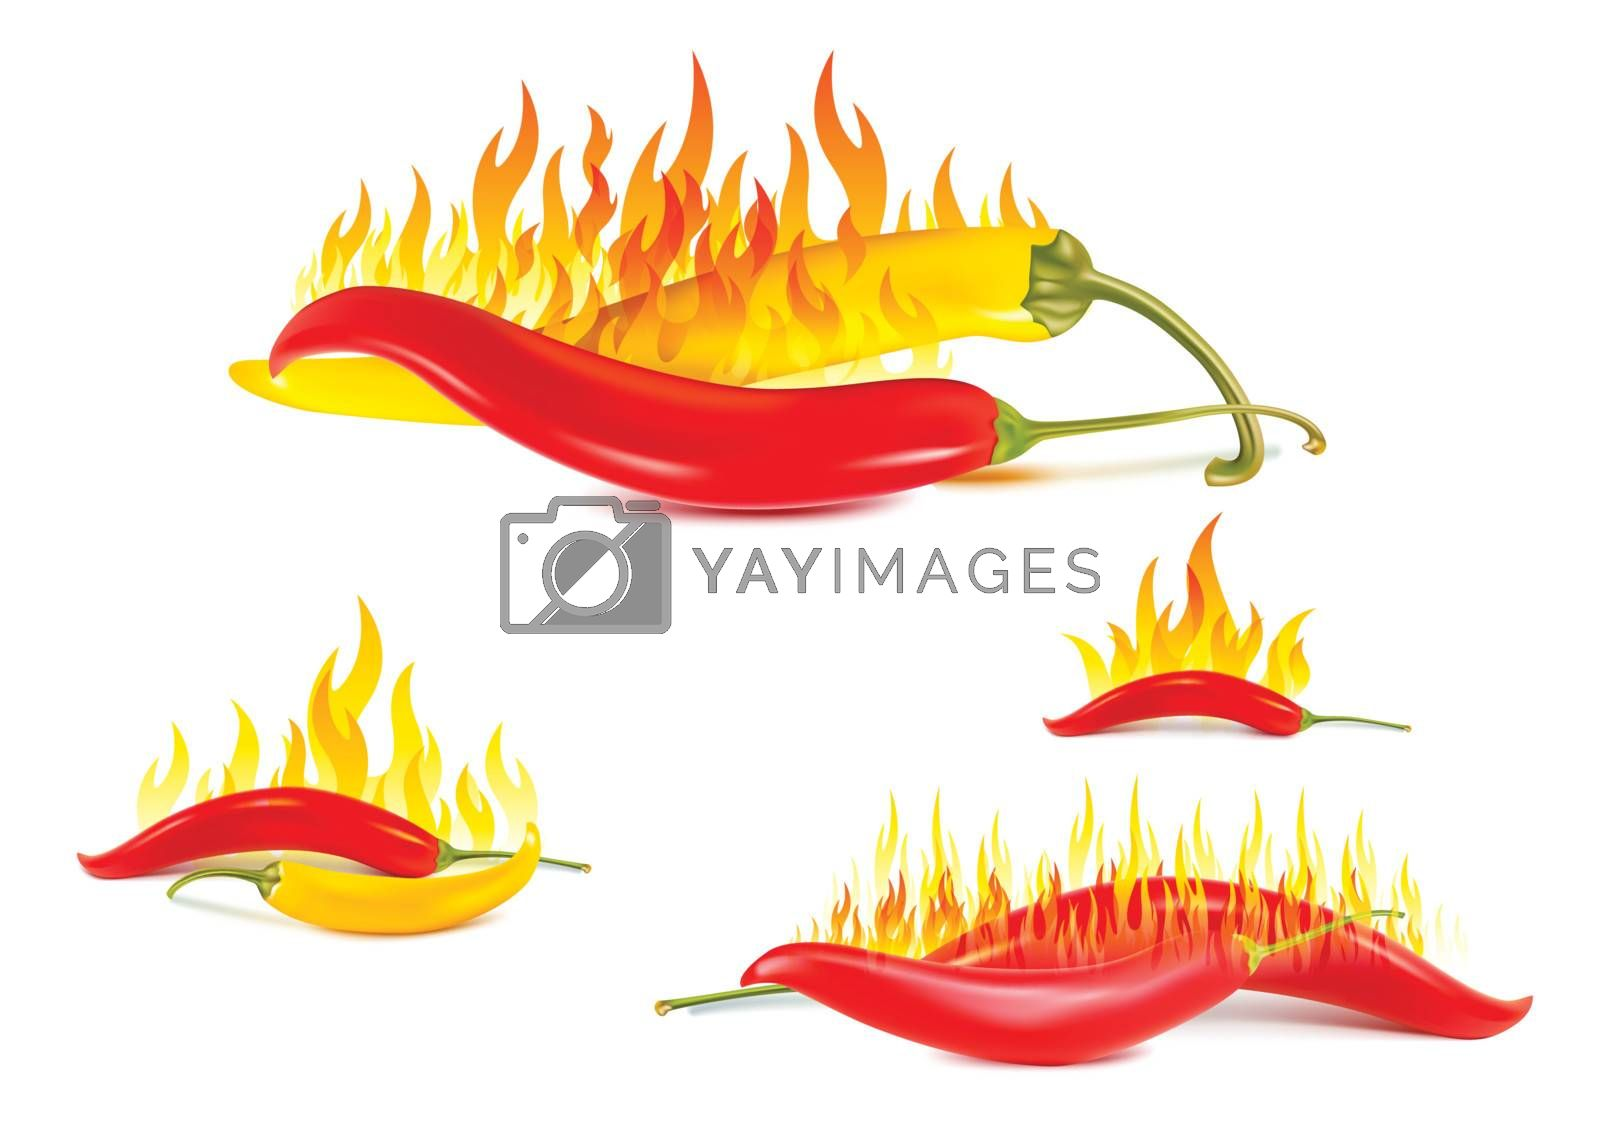 yellow and red hot chili pepper